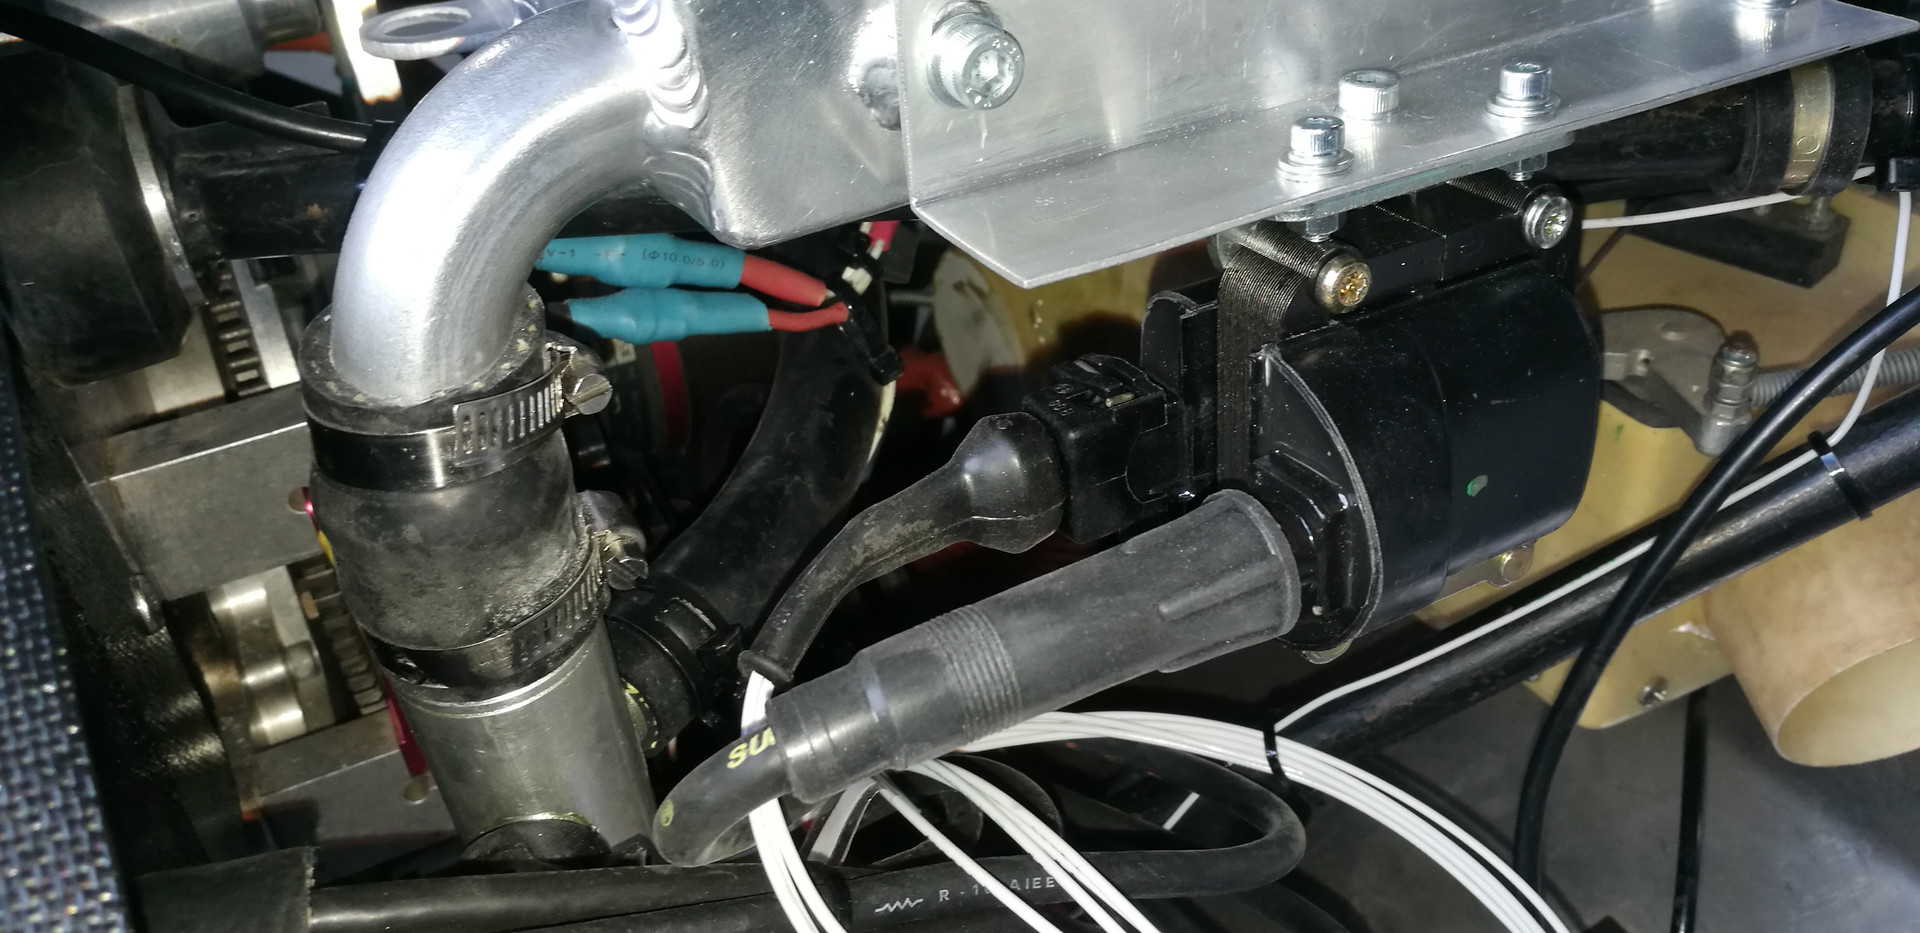 e-ignition coil seen